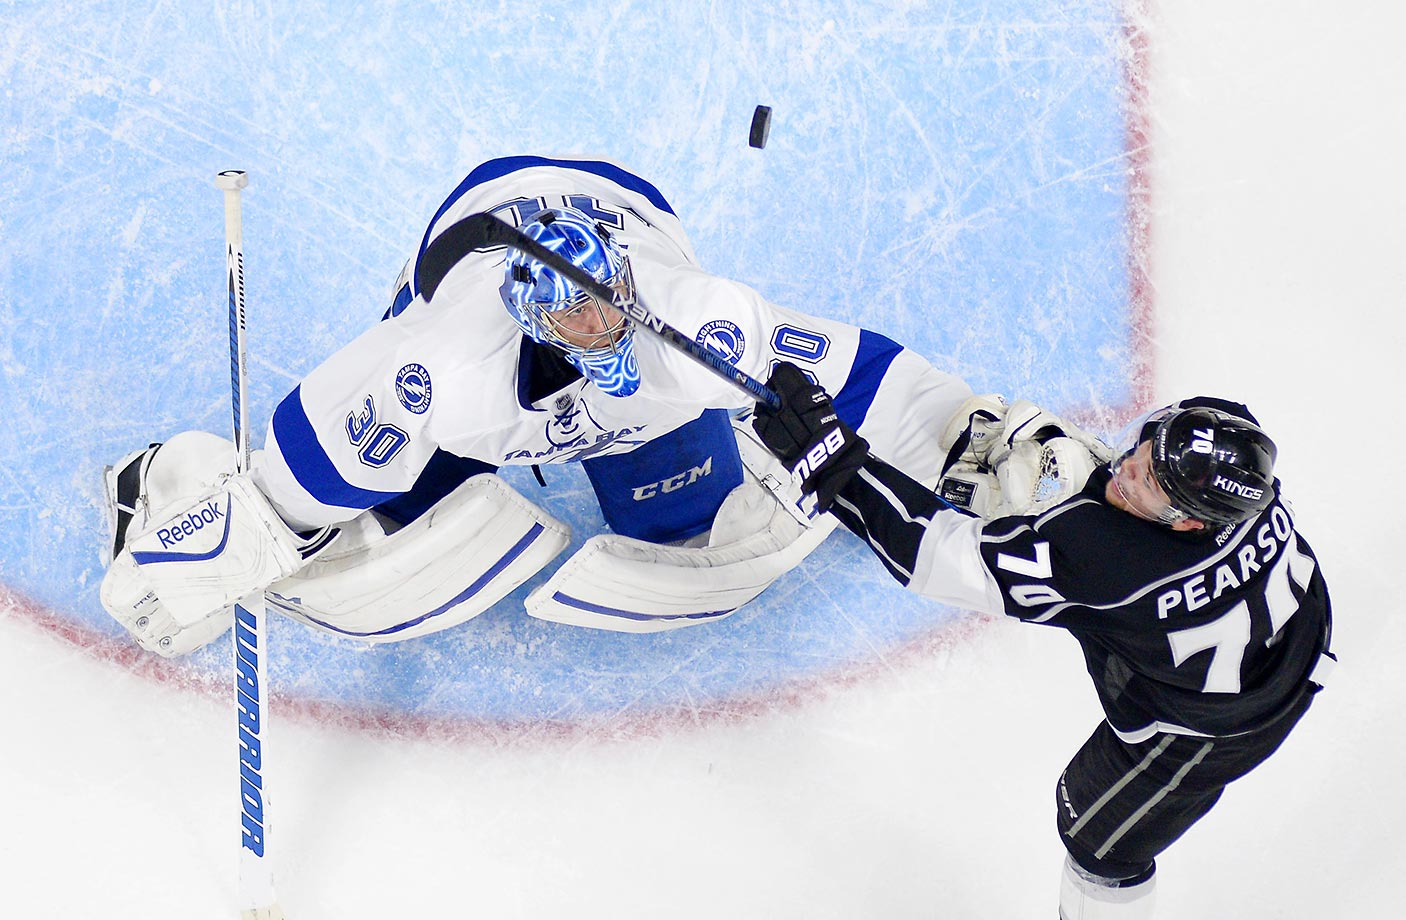 Tanner Pearson of the Los Angeles Kings tries to score on Ben Bishop of the Tampa Bay Lightning. The Kings won 3-1.